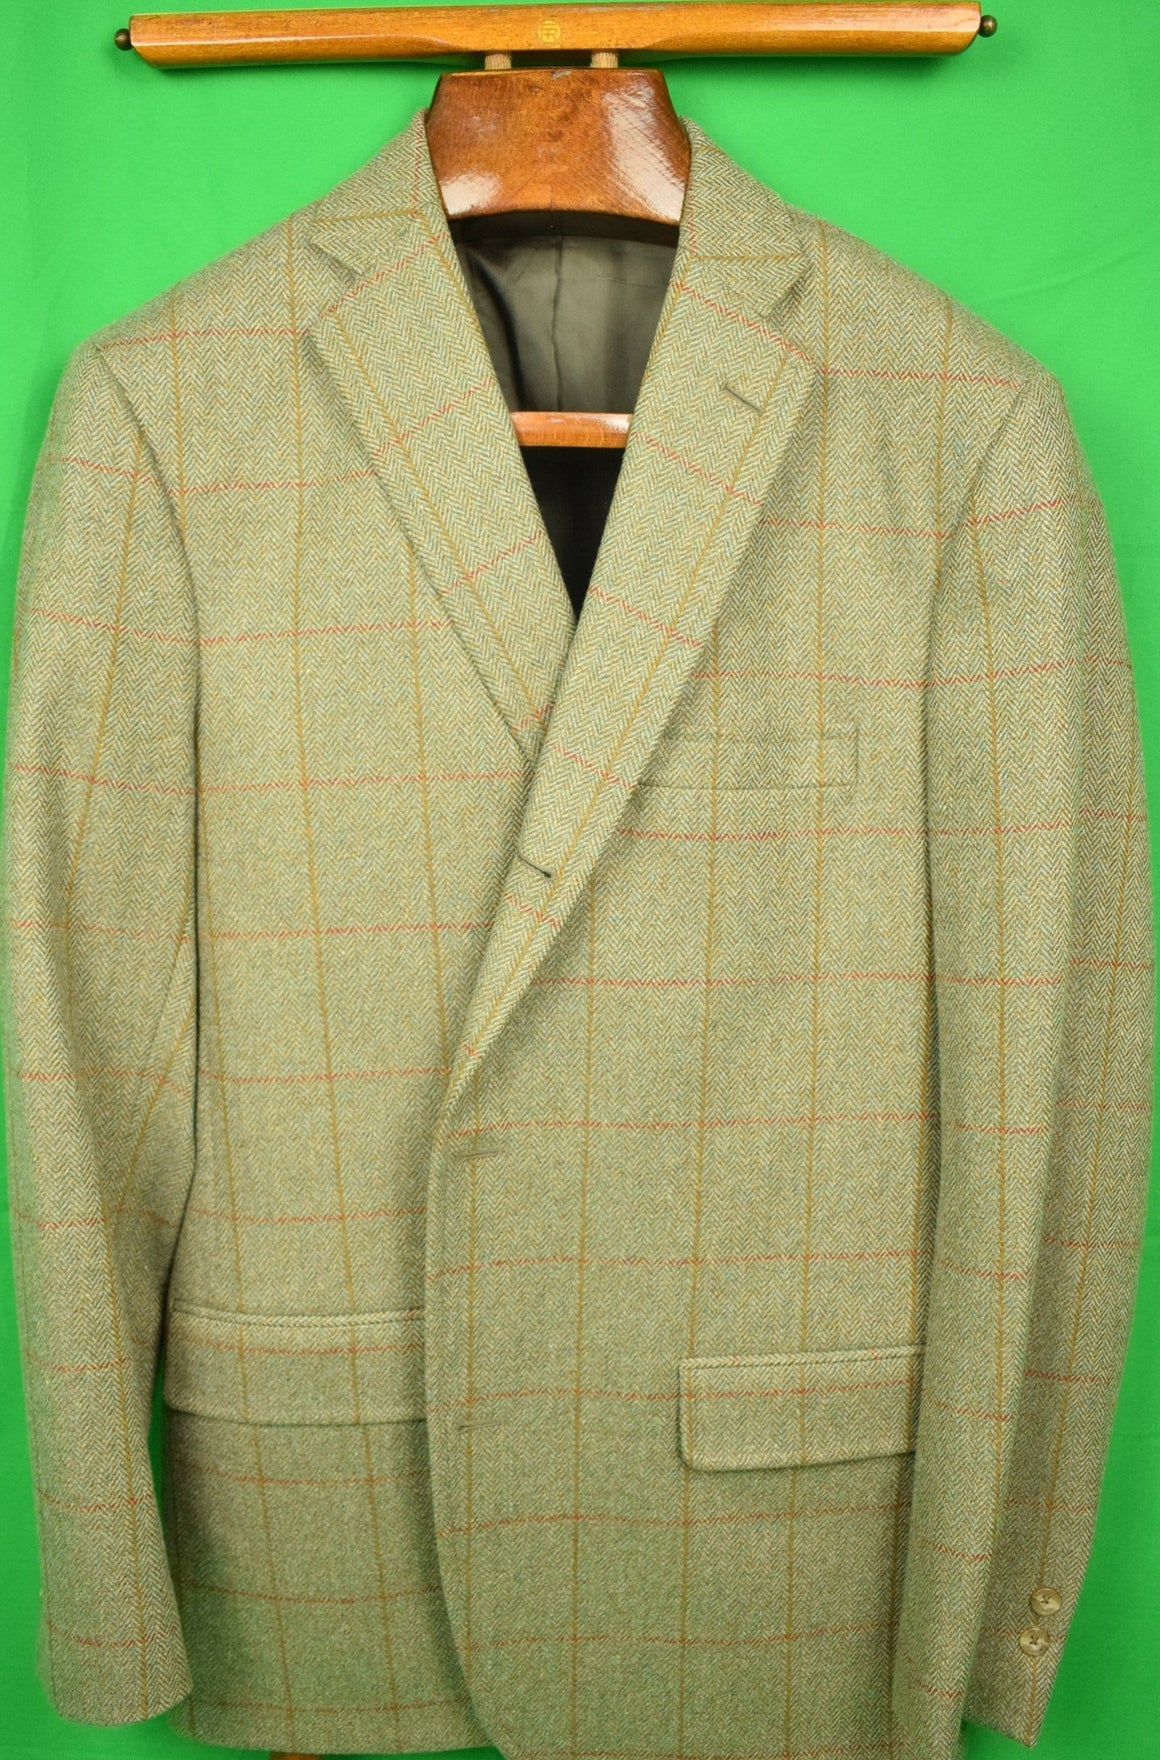 """J Press/ Robert Noble Gamekeeper Tweed Huntsman Jacket Woven in Scotland"" Sz: 40L"